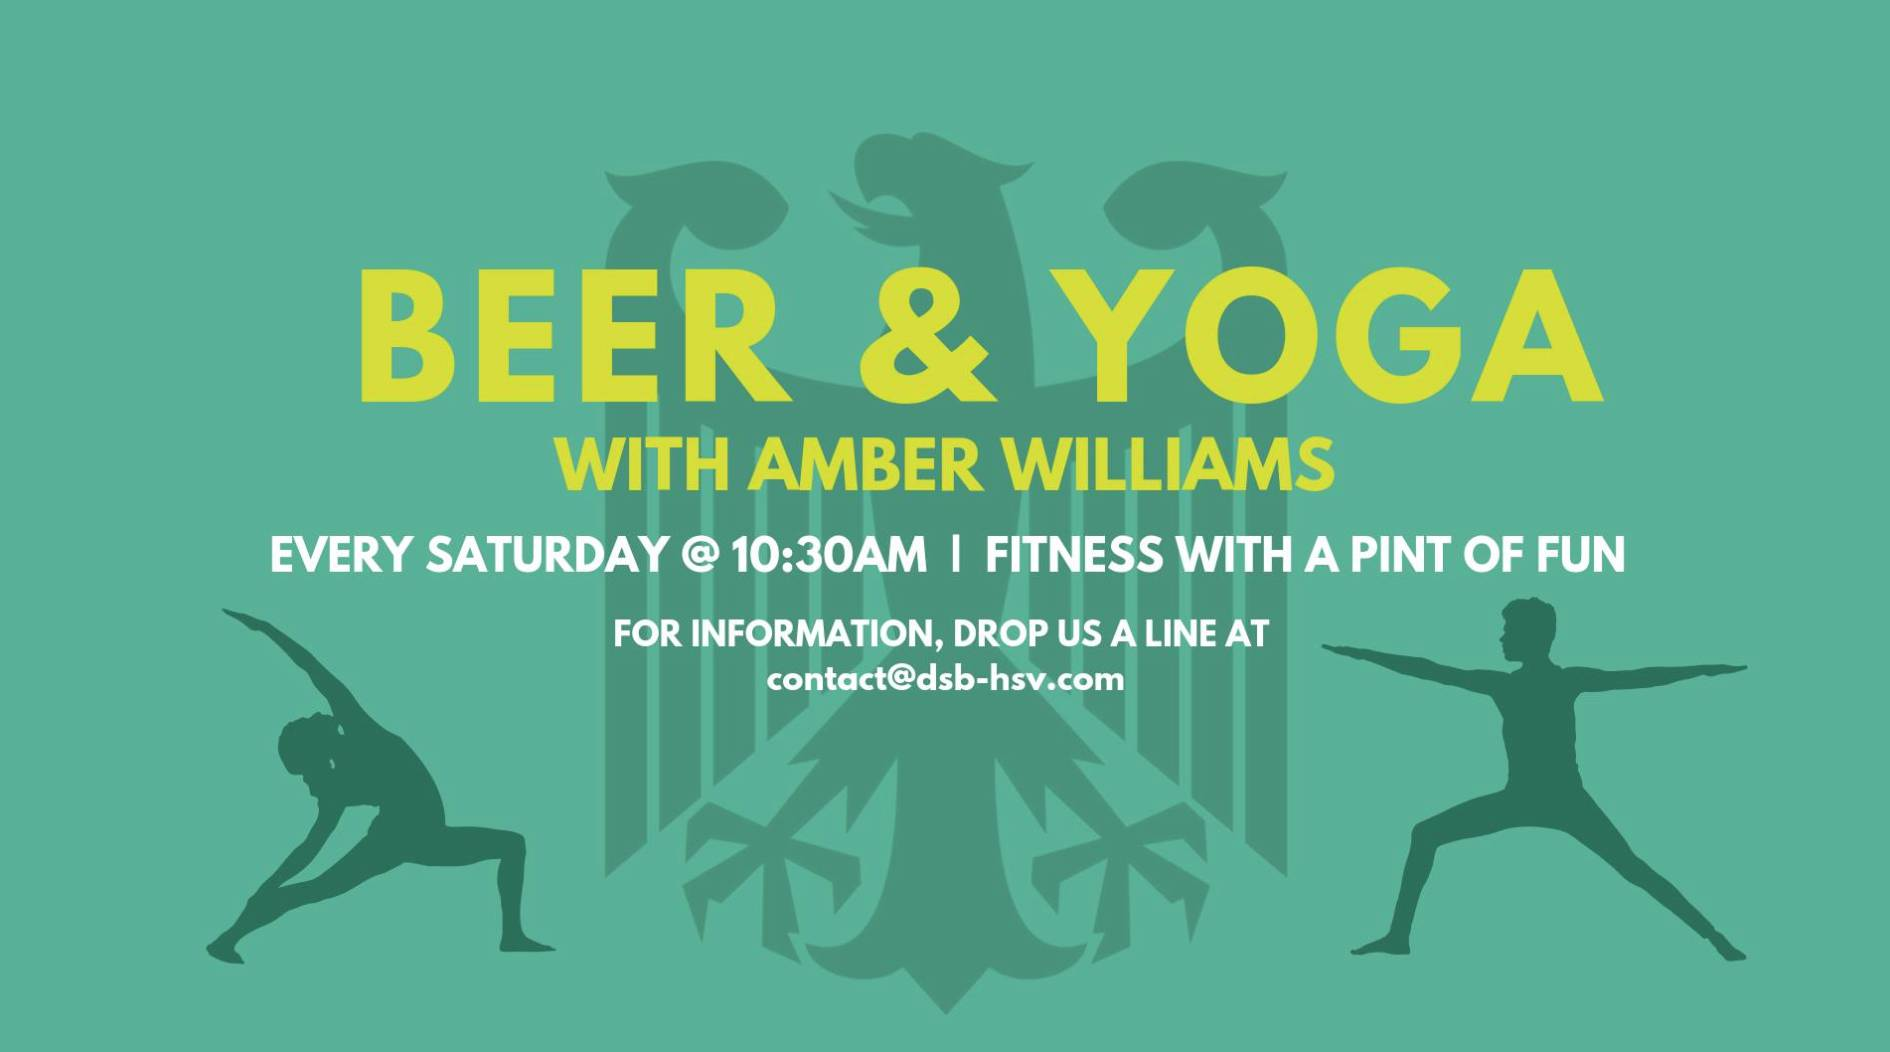 Beer & Yoga with Amber Williams